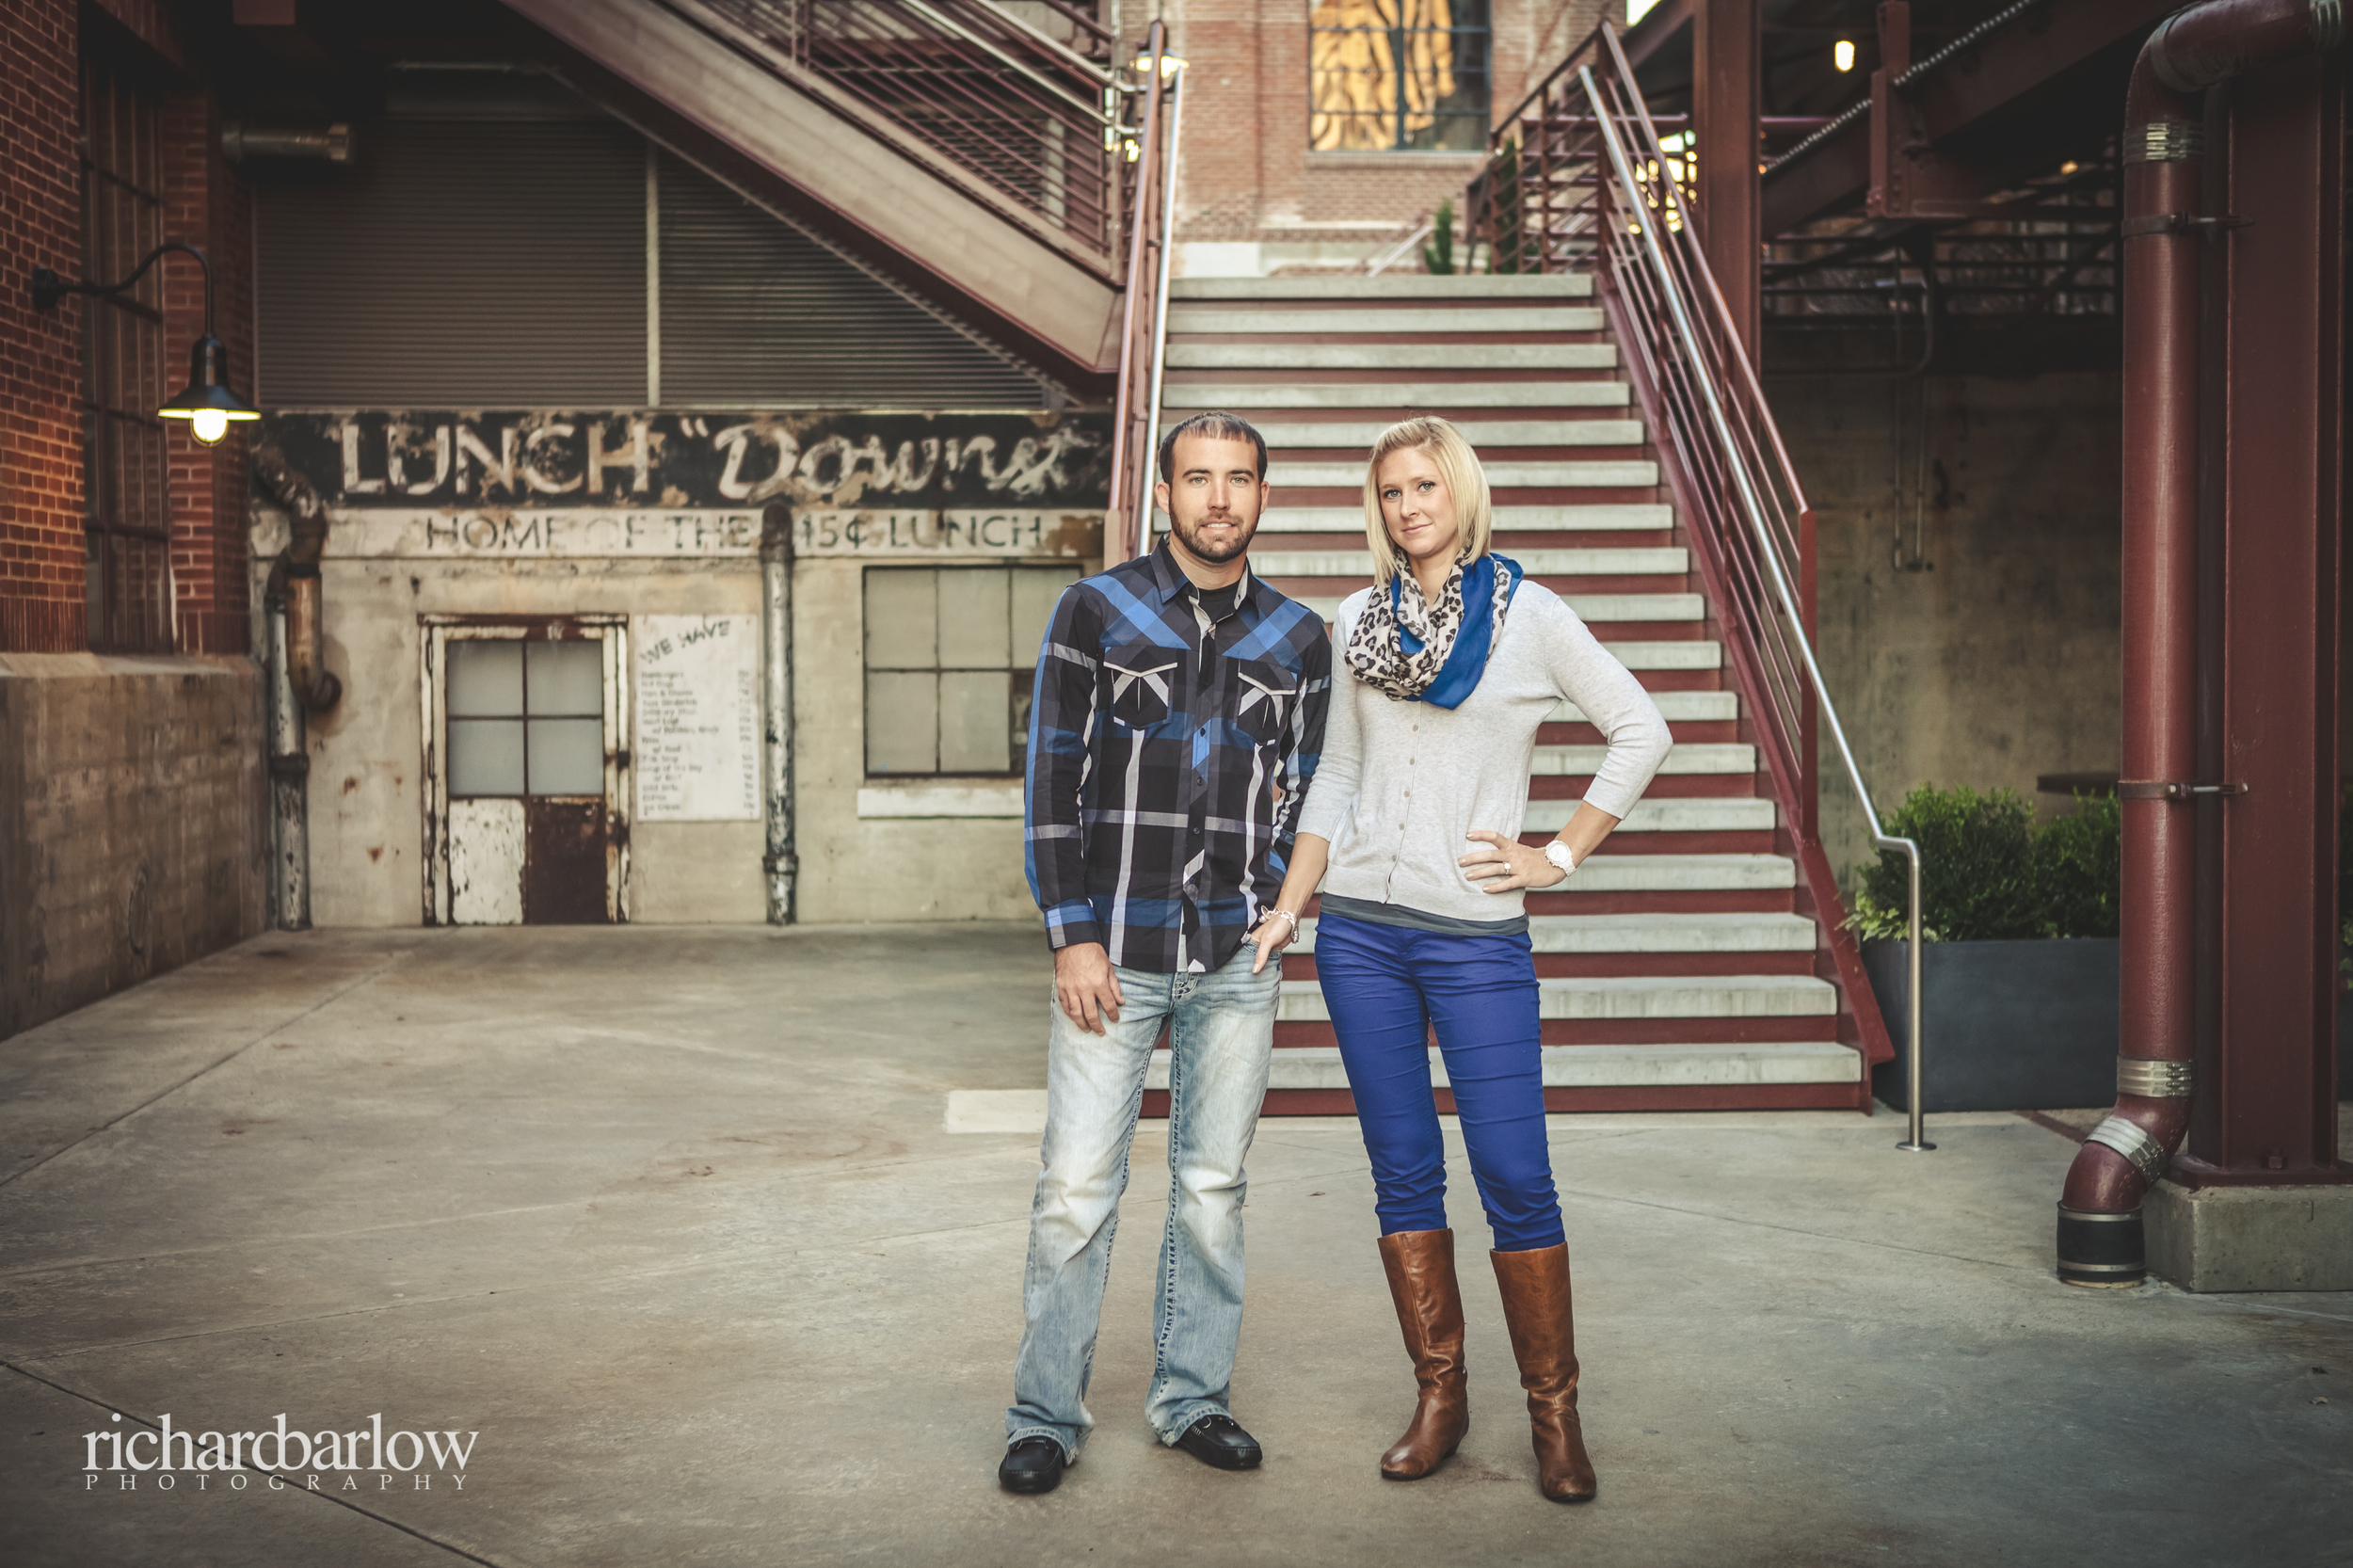 richard barlow photography - Mike and Renee Engagement Session NC-13.jpg